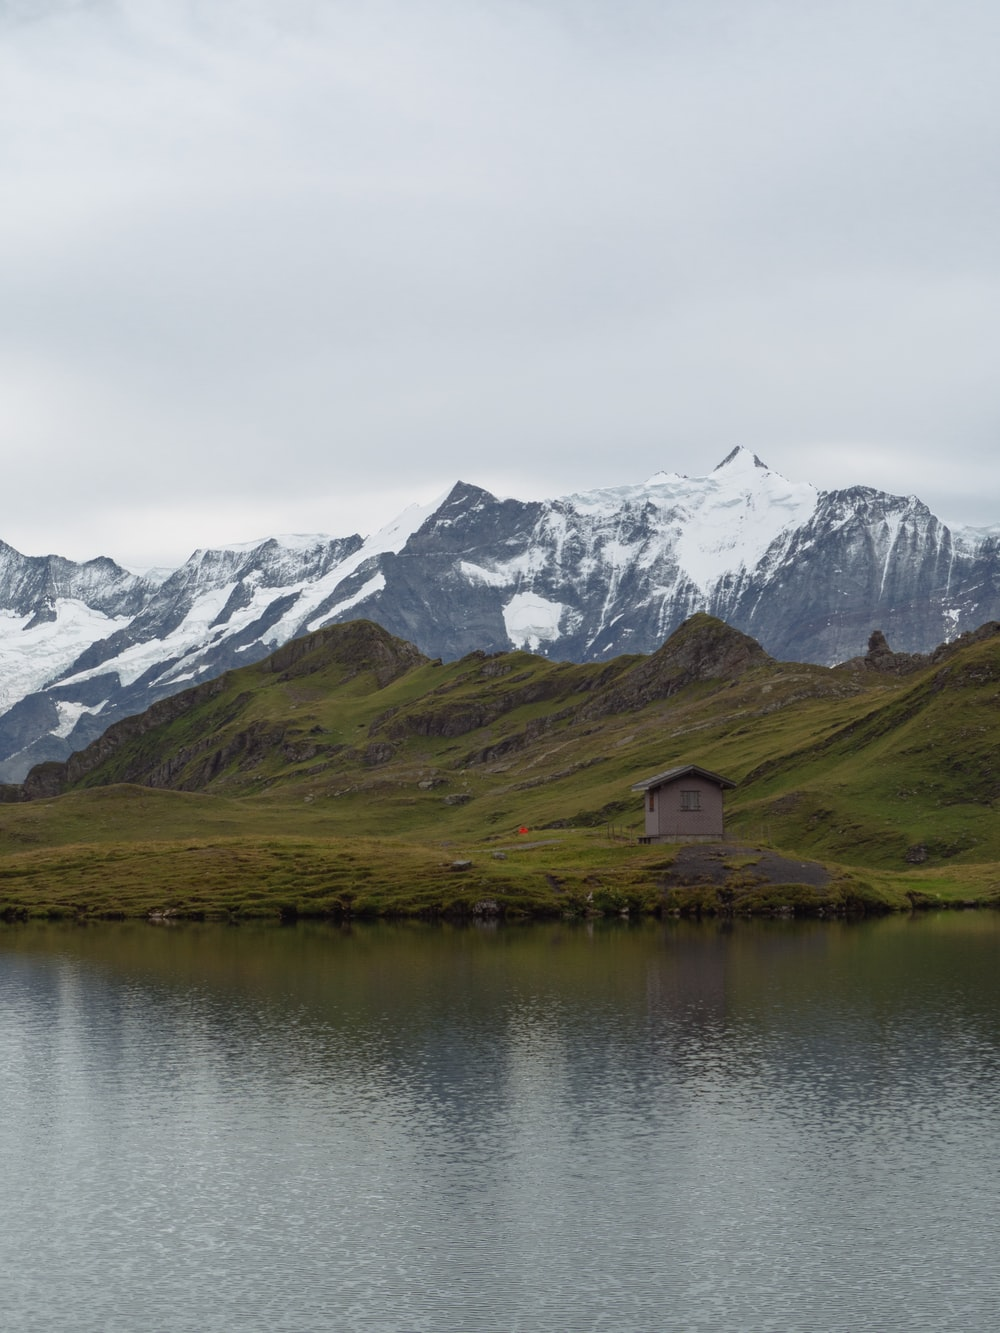 brown wooden house on lake near snow covered mountain